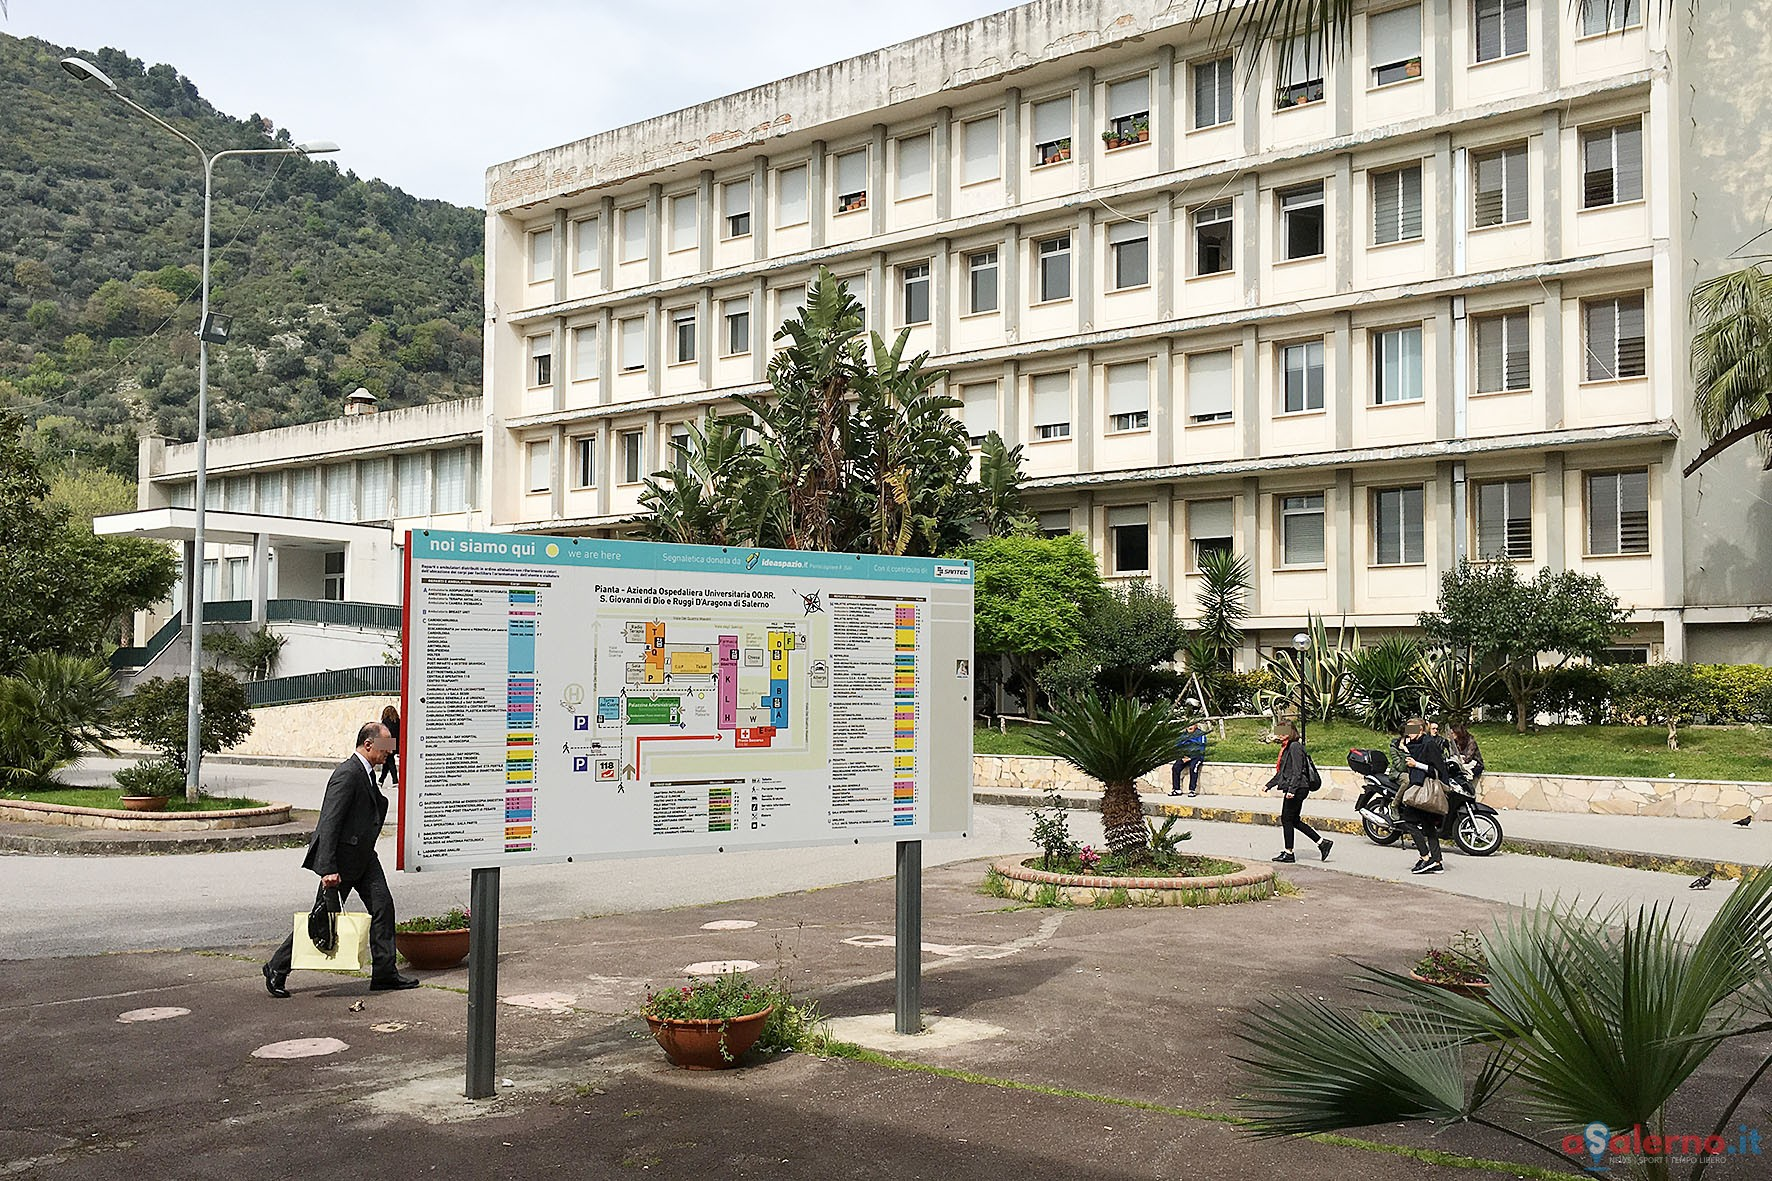 Ospedale31